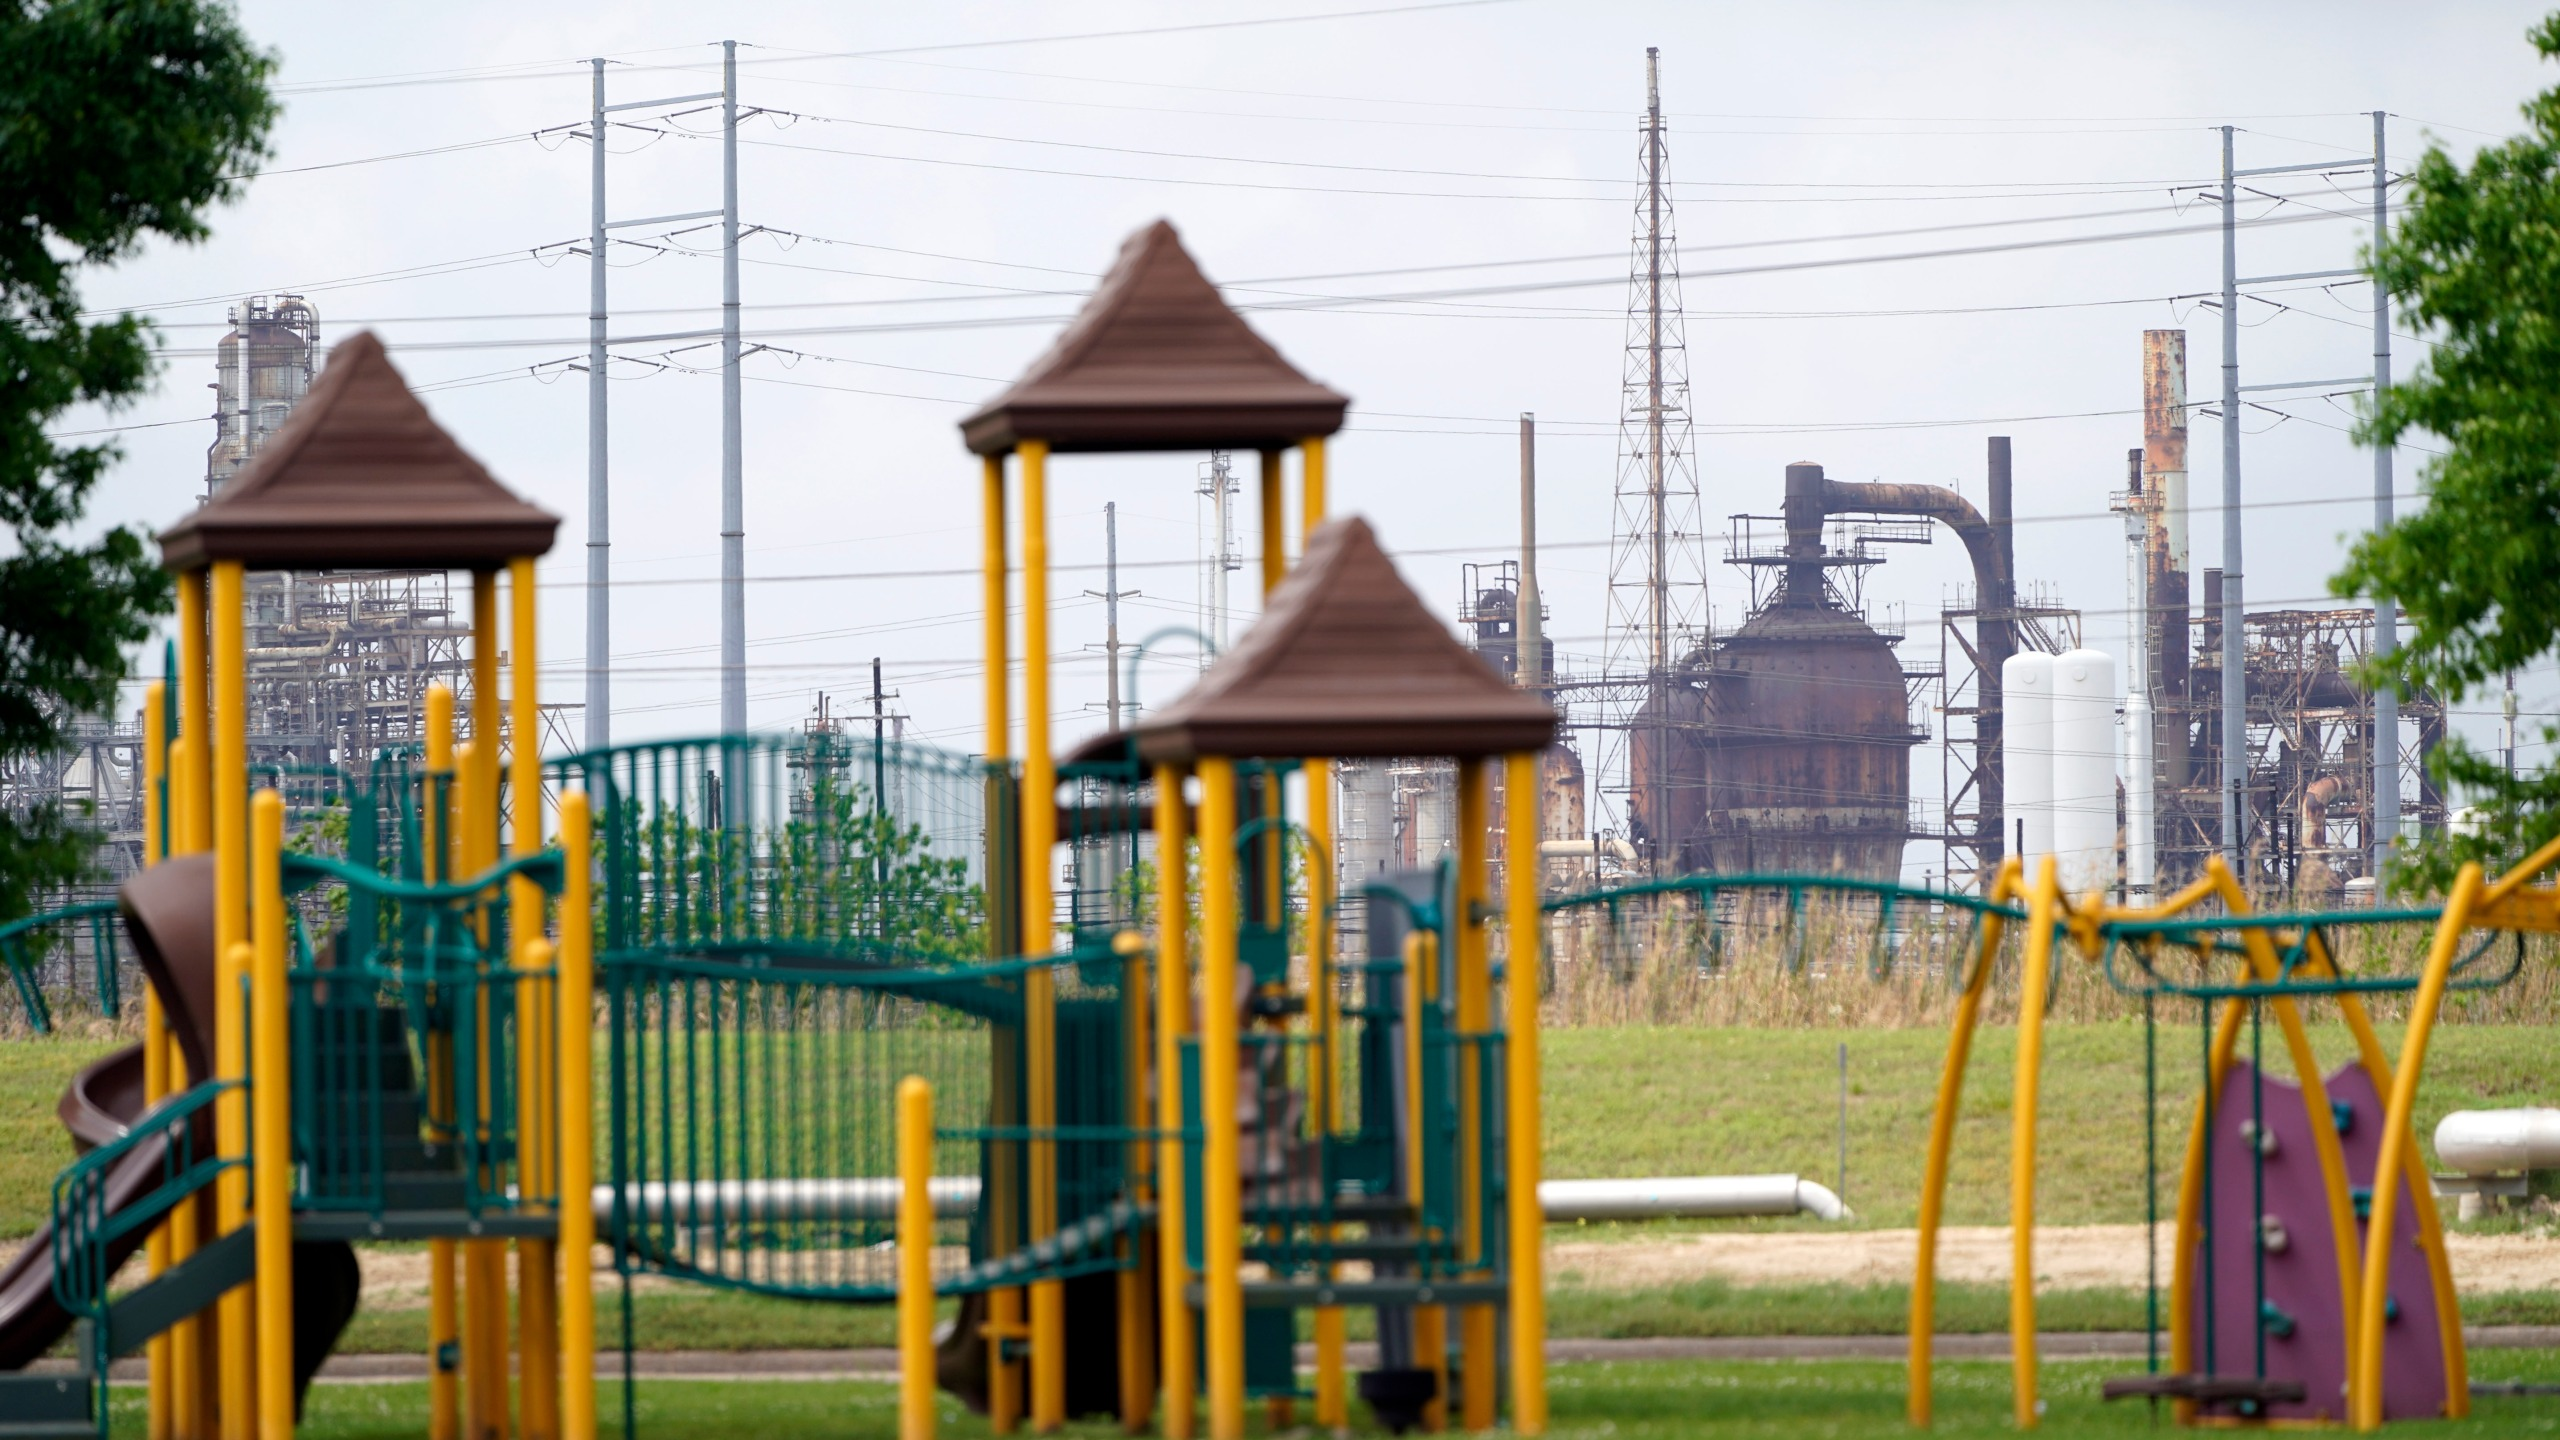 In this March 23, 2020 file photo, a playground outside the Prince Hall Village Apartments sits empty near one of the petrochemical facilities in Port Arthur, Texas. (David J. Phillip)